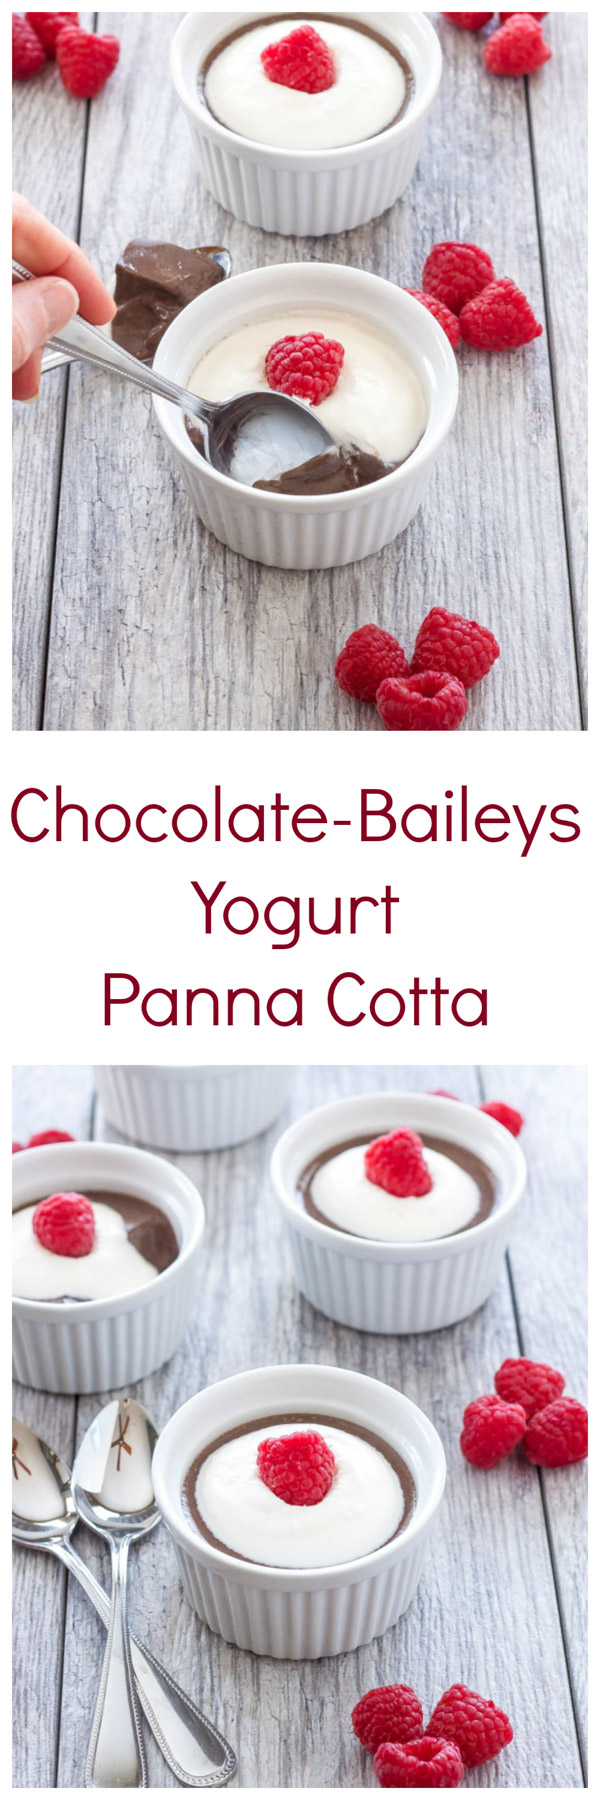 Chocolate-Baileys Yogurt Panna Cotta | Chocolate panna cotta spiked with Baileys Irish cream! | @reciperunner